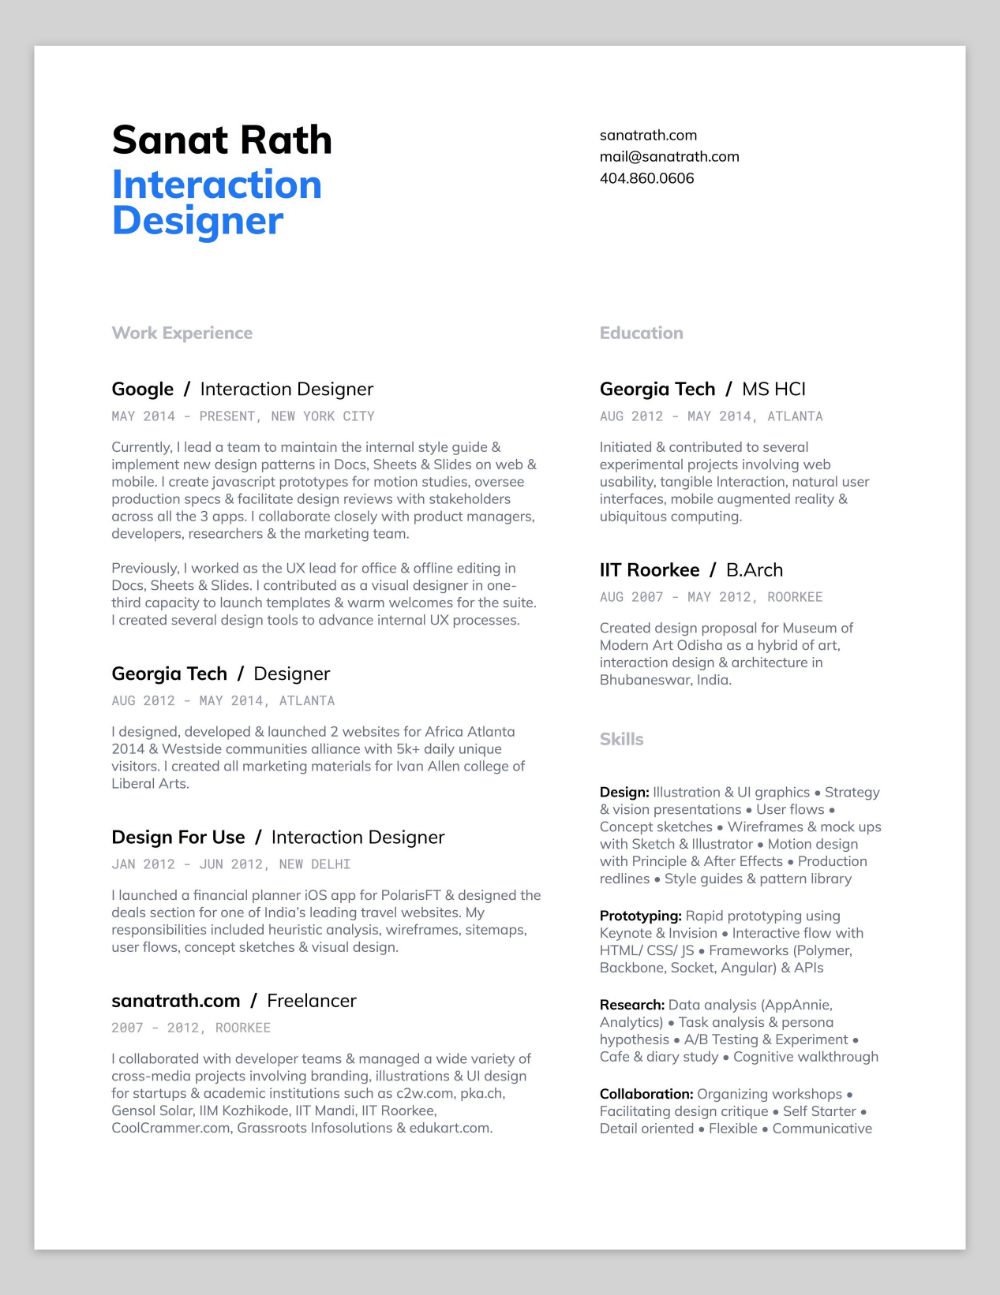 10 Amazing Designer Resumes that Passed Google's Bar - Resume design, Resume design creative, Resume layout, Human centered design, Resume design template, Resume - Jihoon is a student at Human Centered Design & Engineering program at University of Washington and former UX intern at Google  Hanna is a Senior UX Designer at Google Play Store team  She previously…